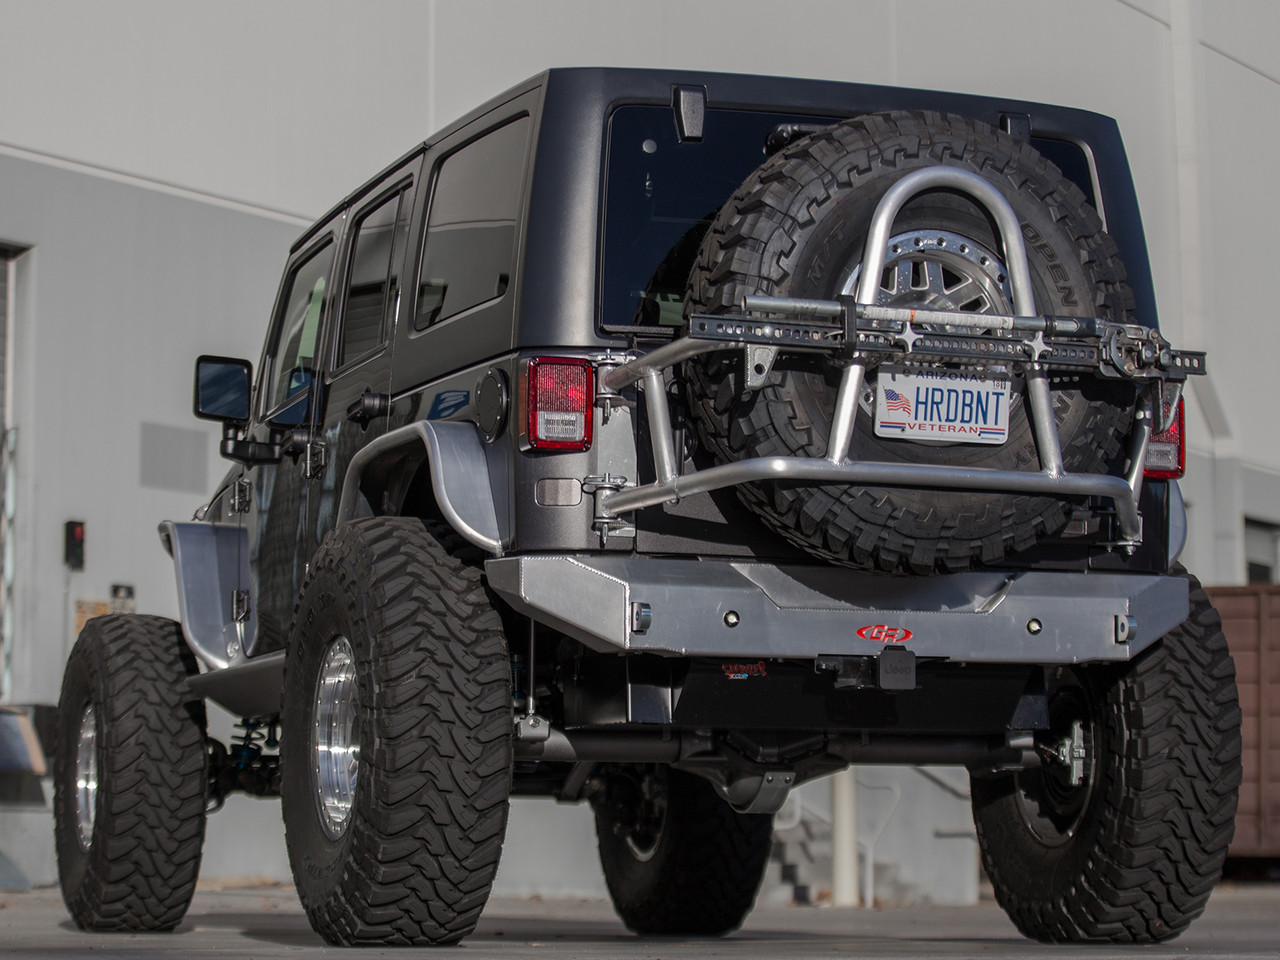 GR Alum Rear Bumper and optional Alum Tire Carrier (sold separately)